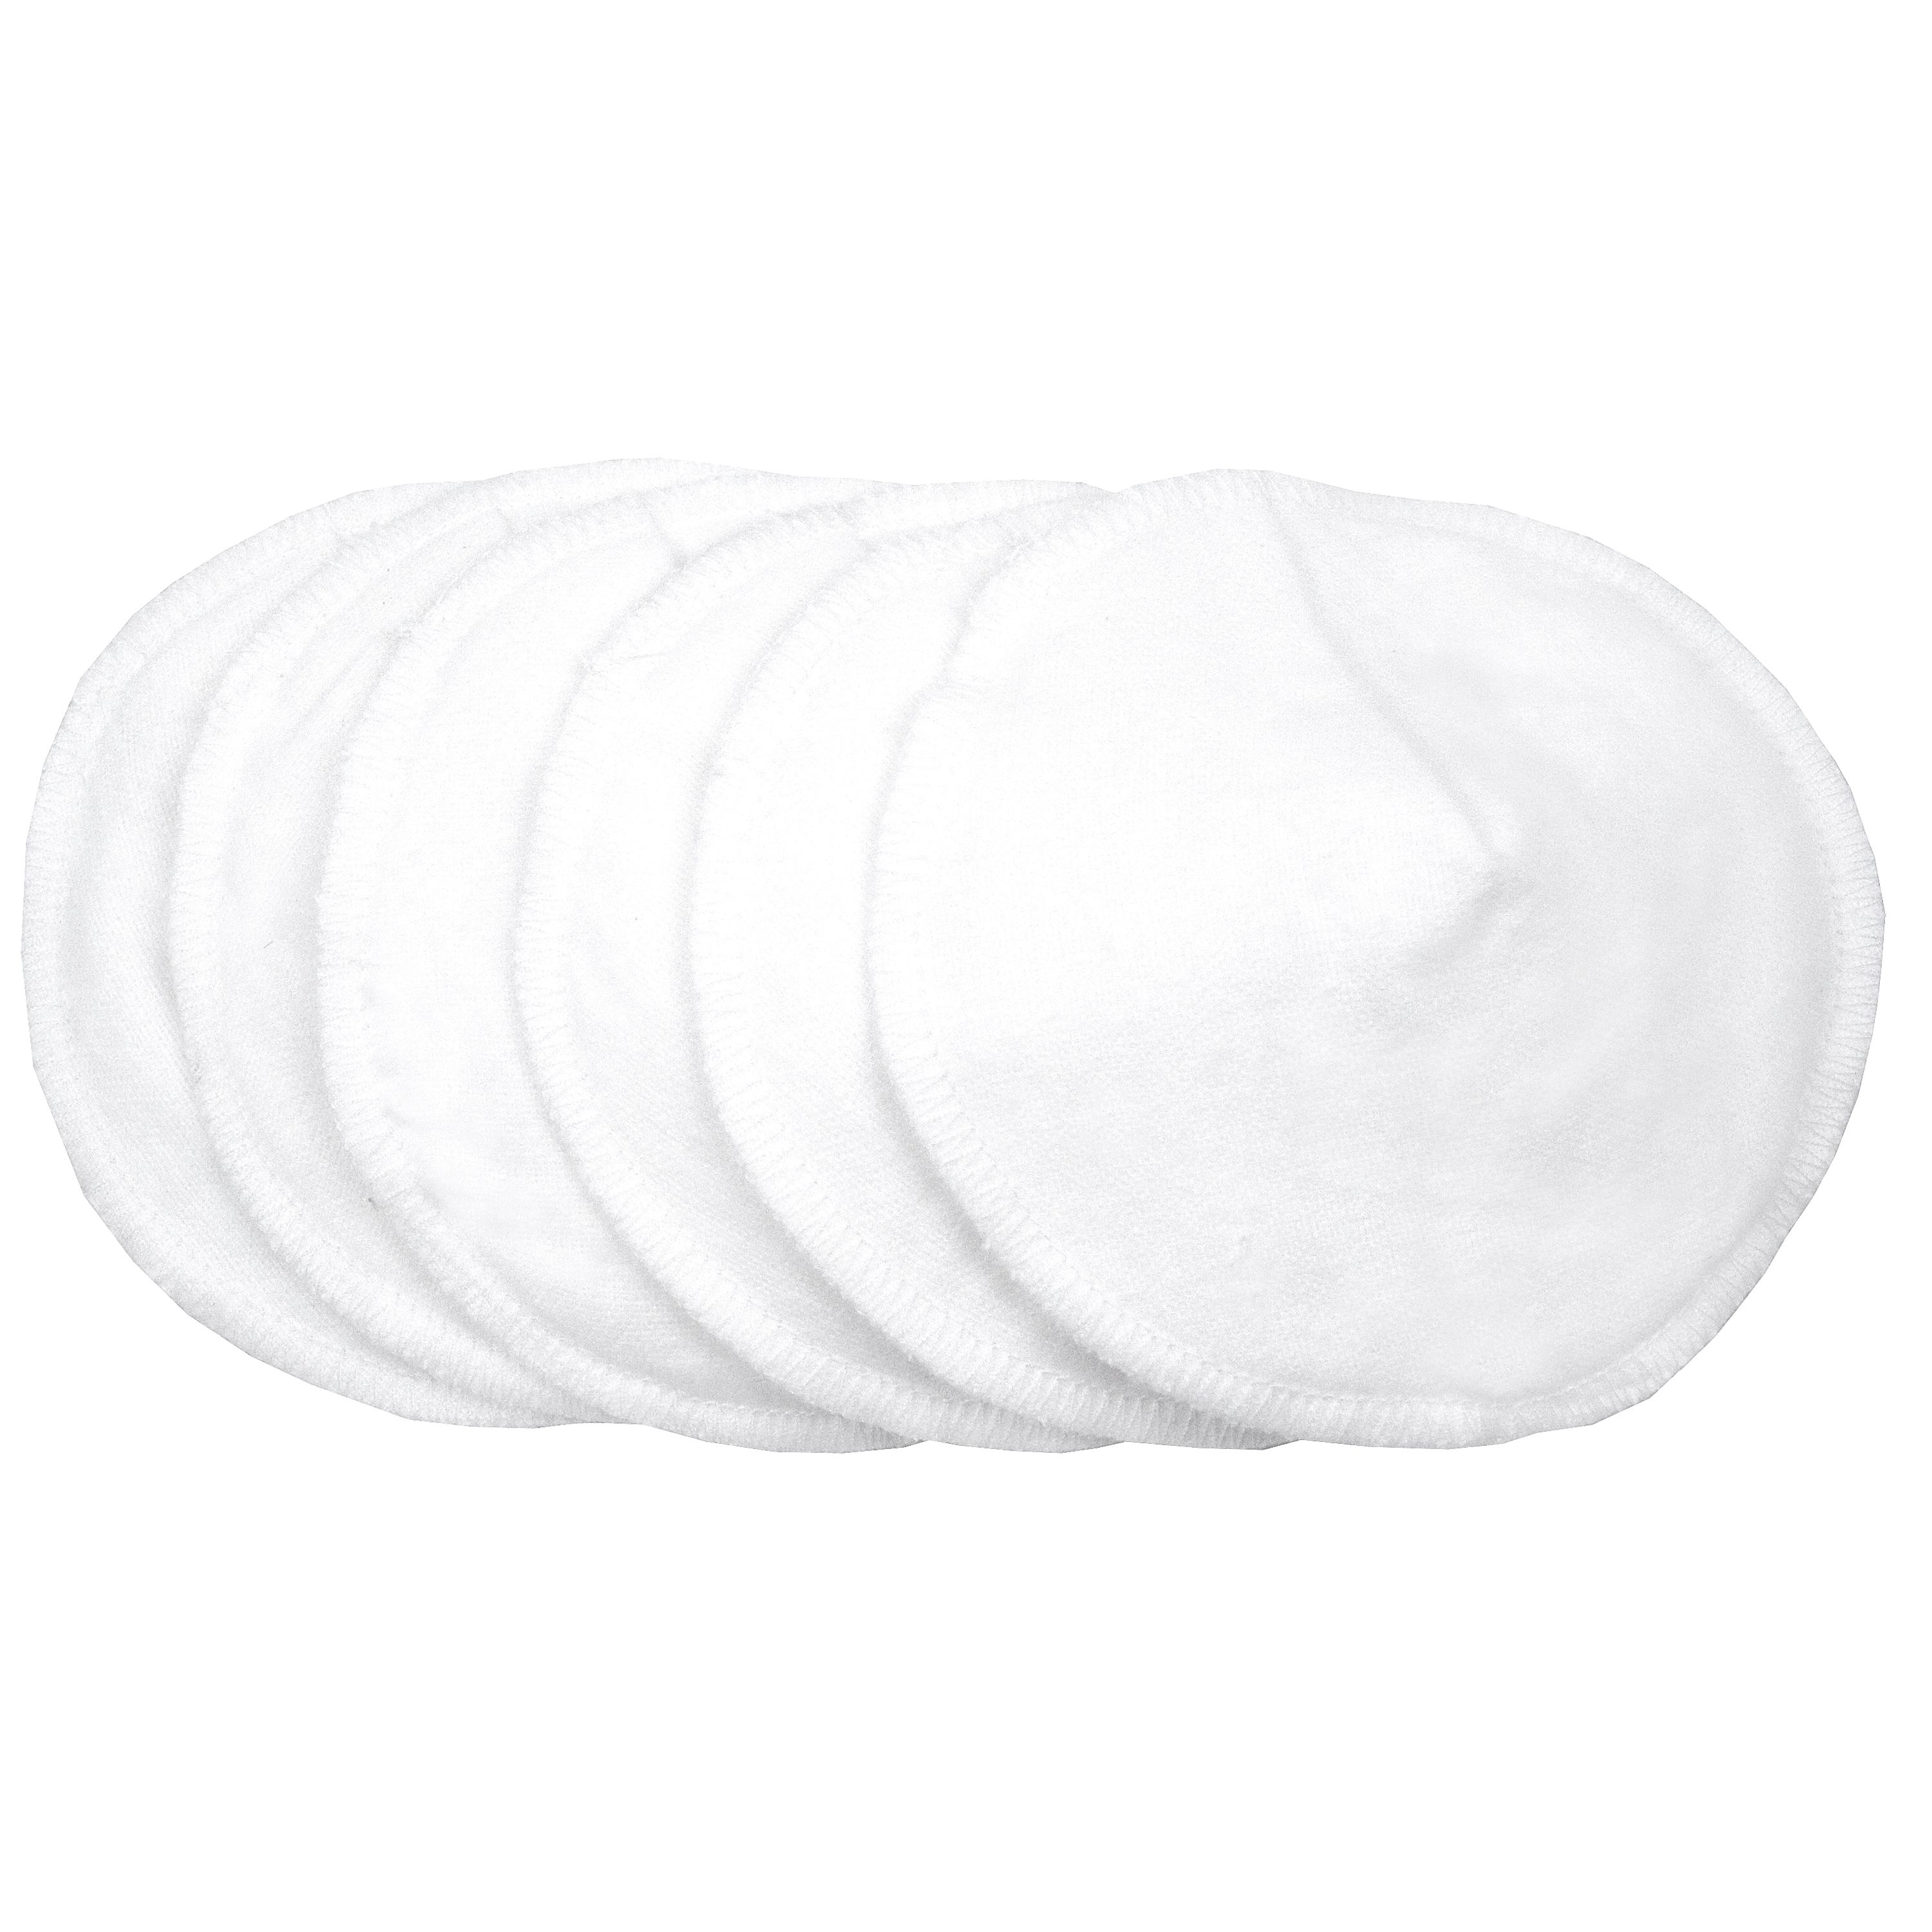 Kushies Washable Nursing Pads White by Kushies